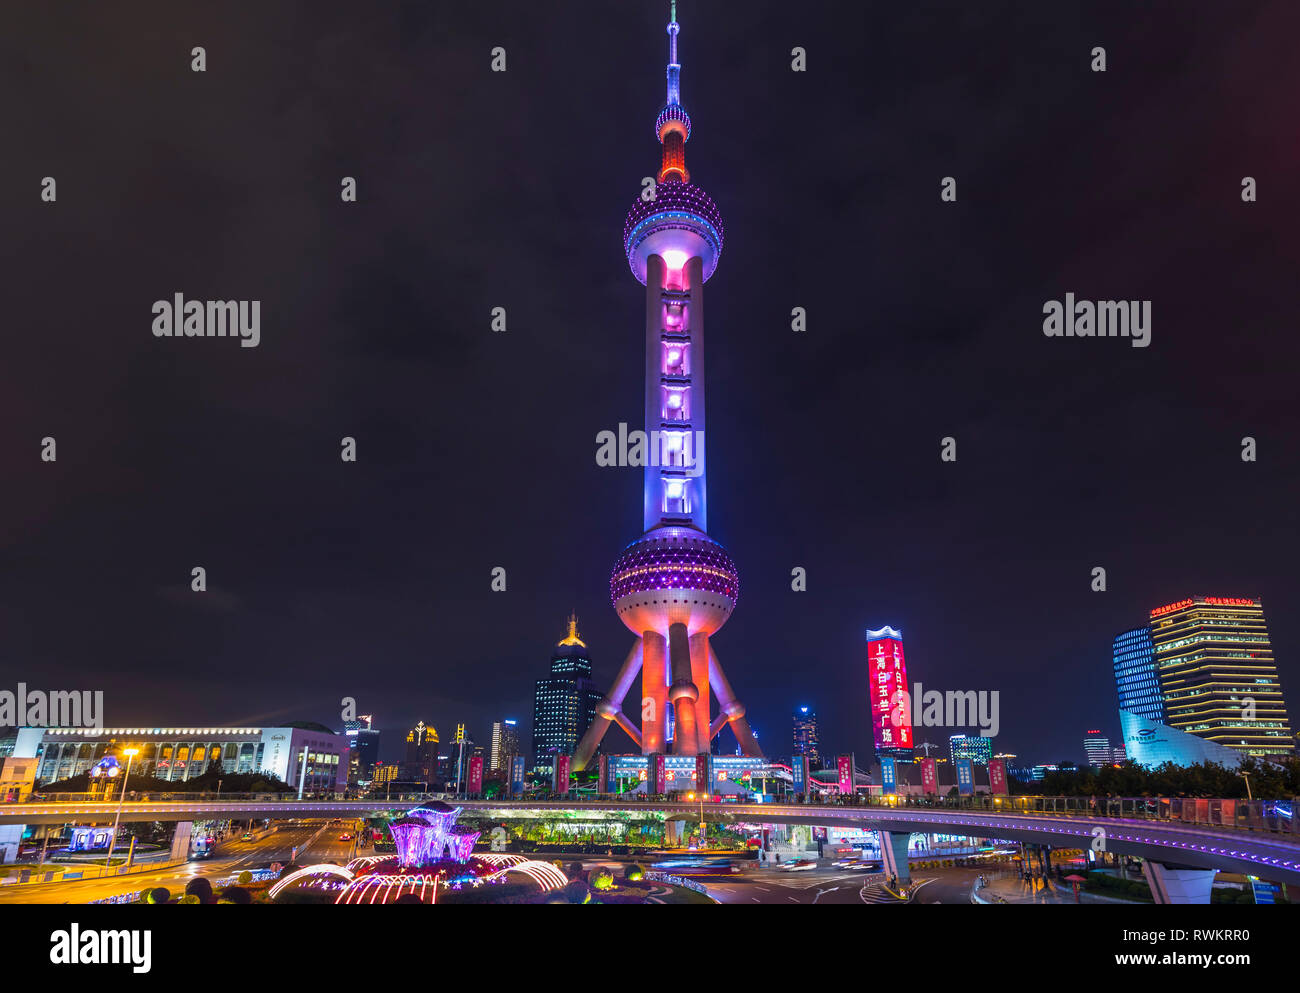 Oriental Pearl Tower at night, Shanghai, Chine Banque D'Images